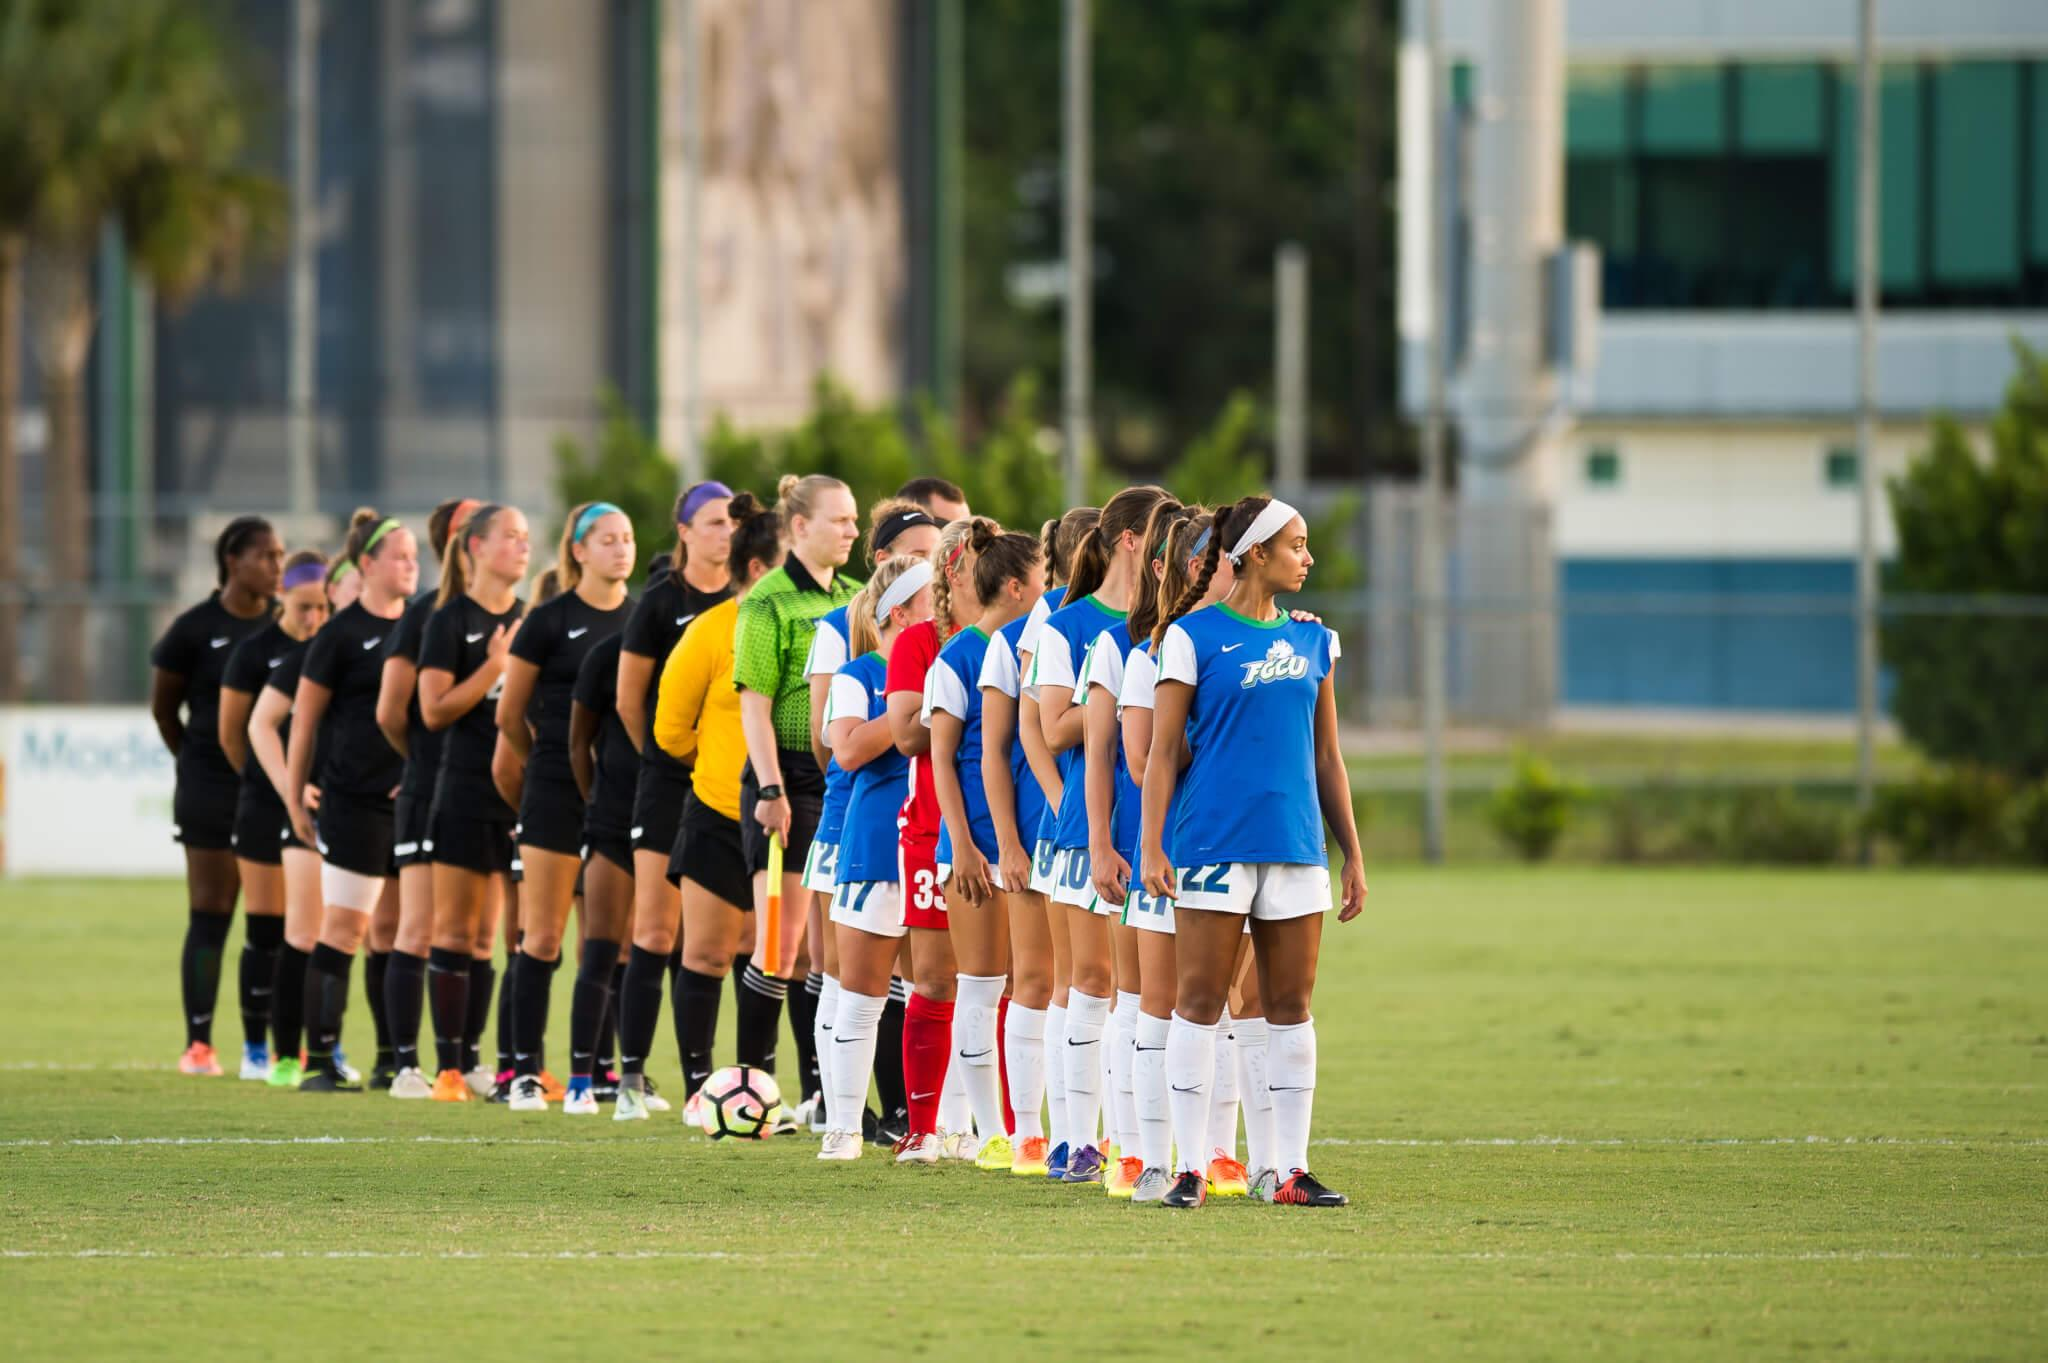 Preview: FGCU women's soccer at Lipscomb